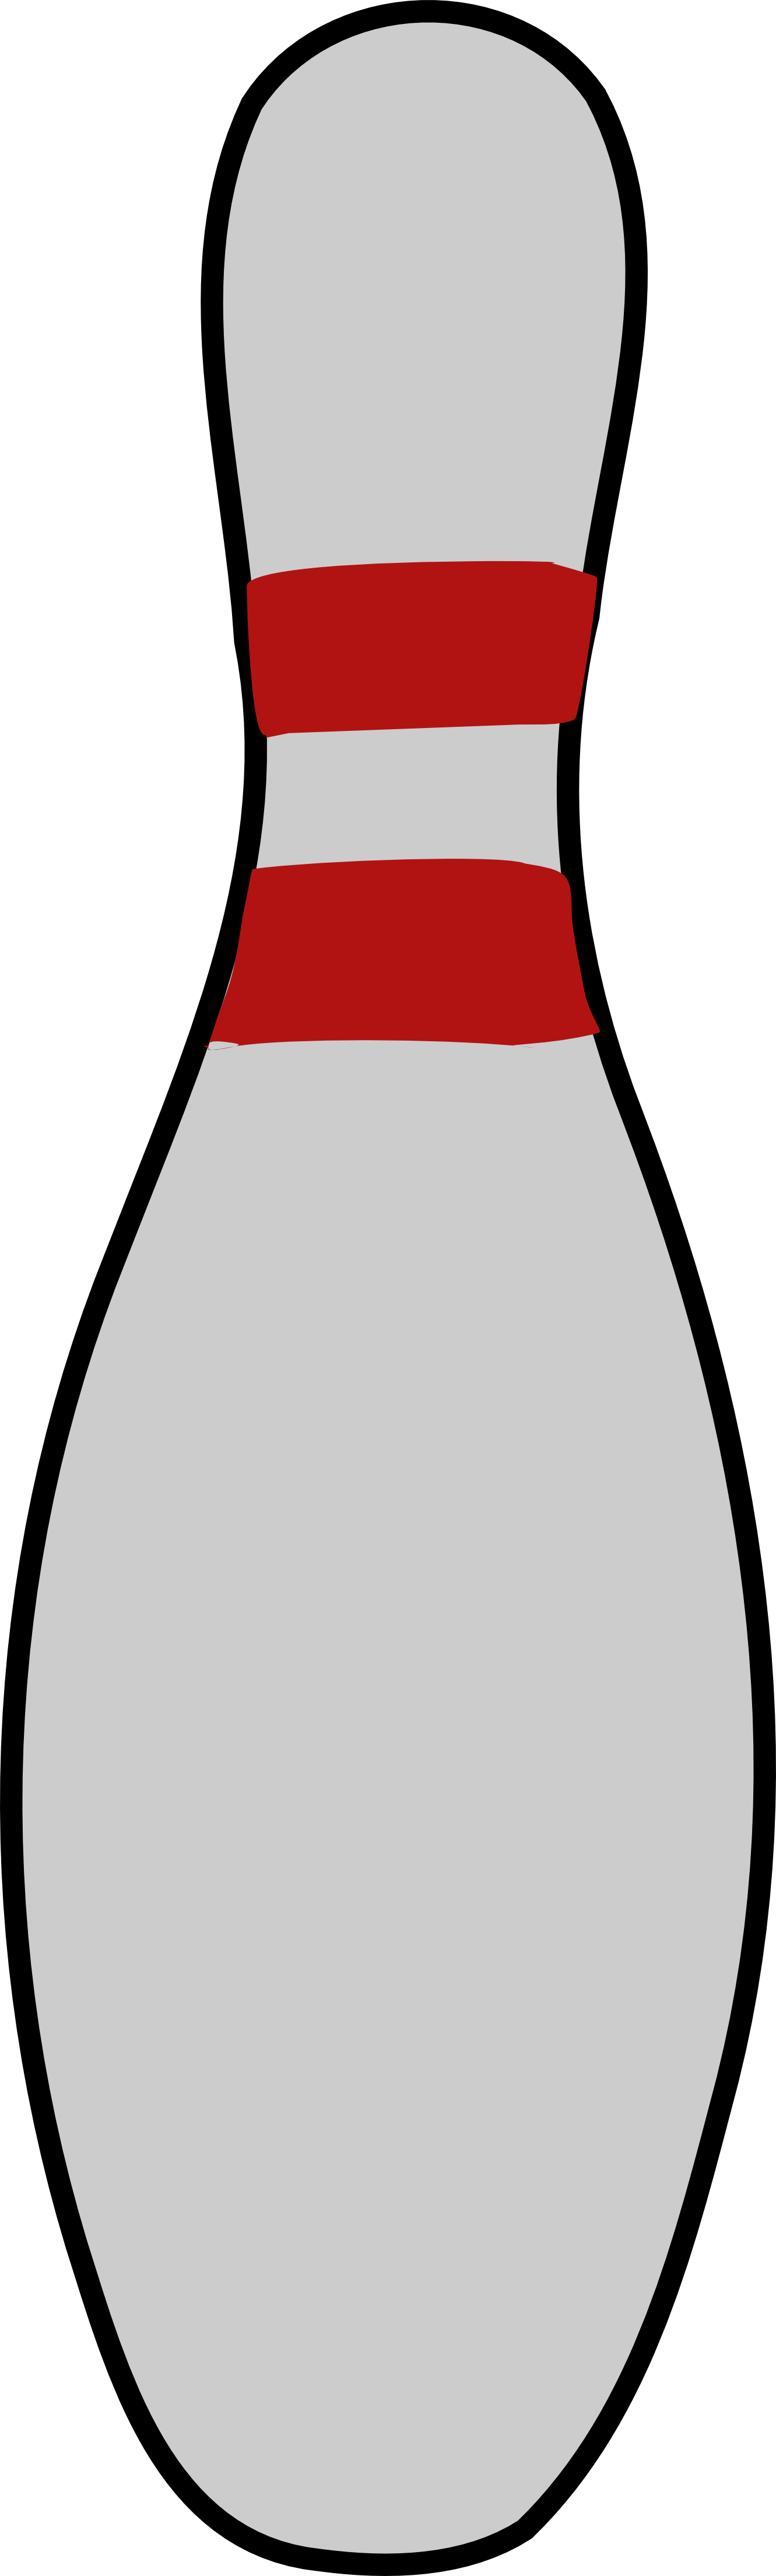 Bowling Pin Clip Art - Cliparts.co